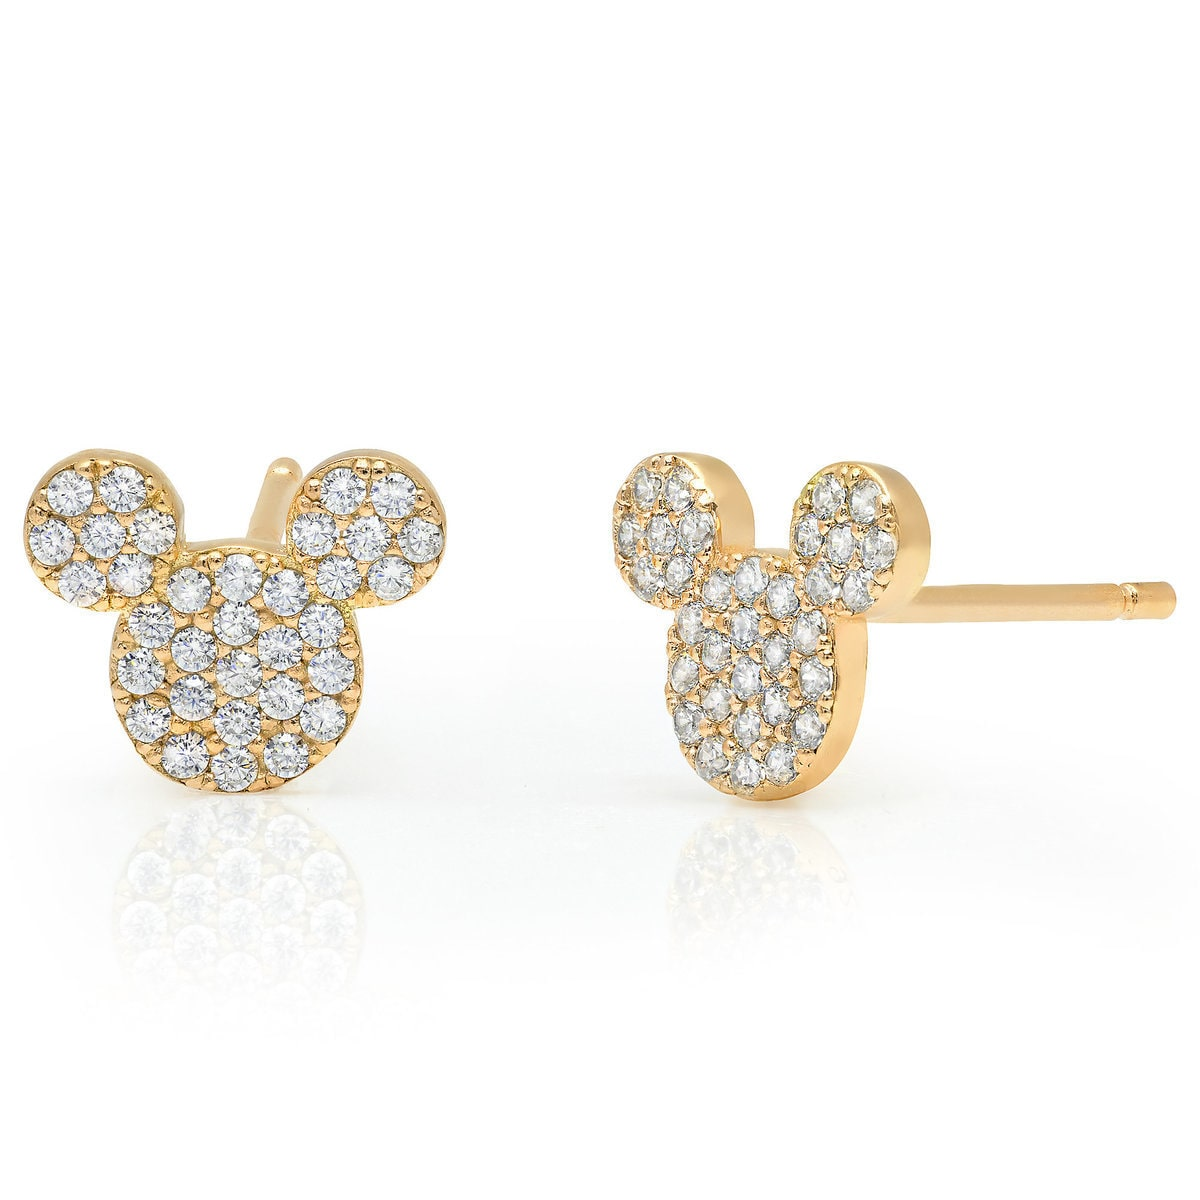 jewellery gold product diamonds graff stud yellow diamond details earrings